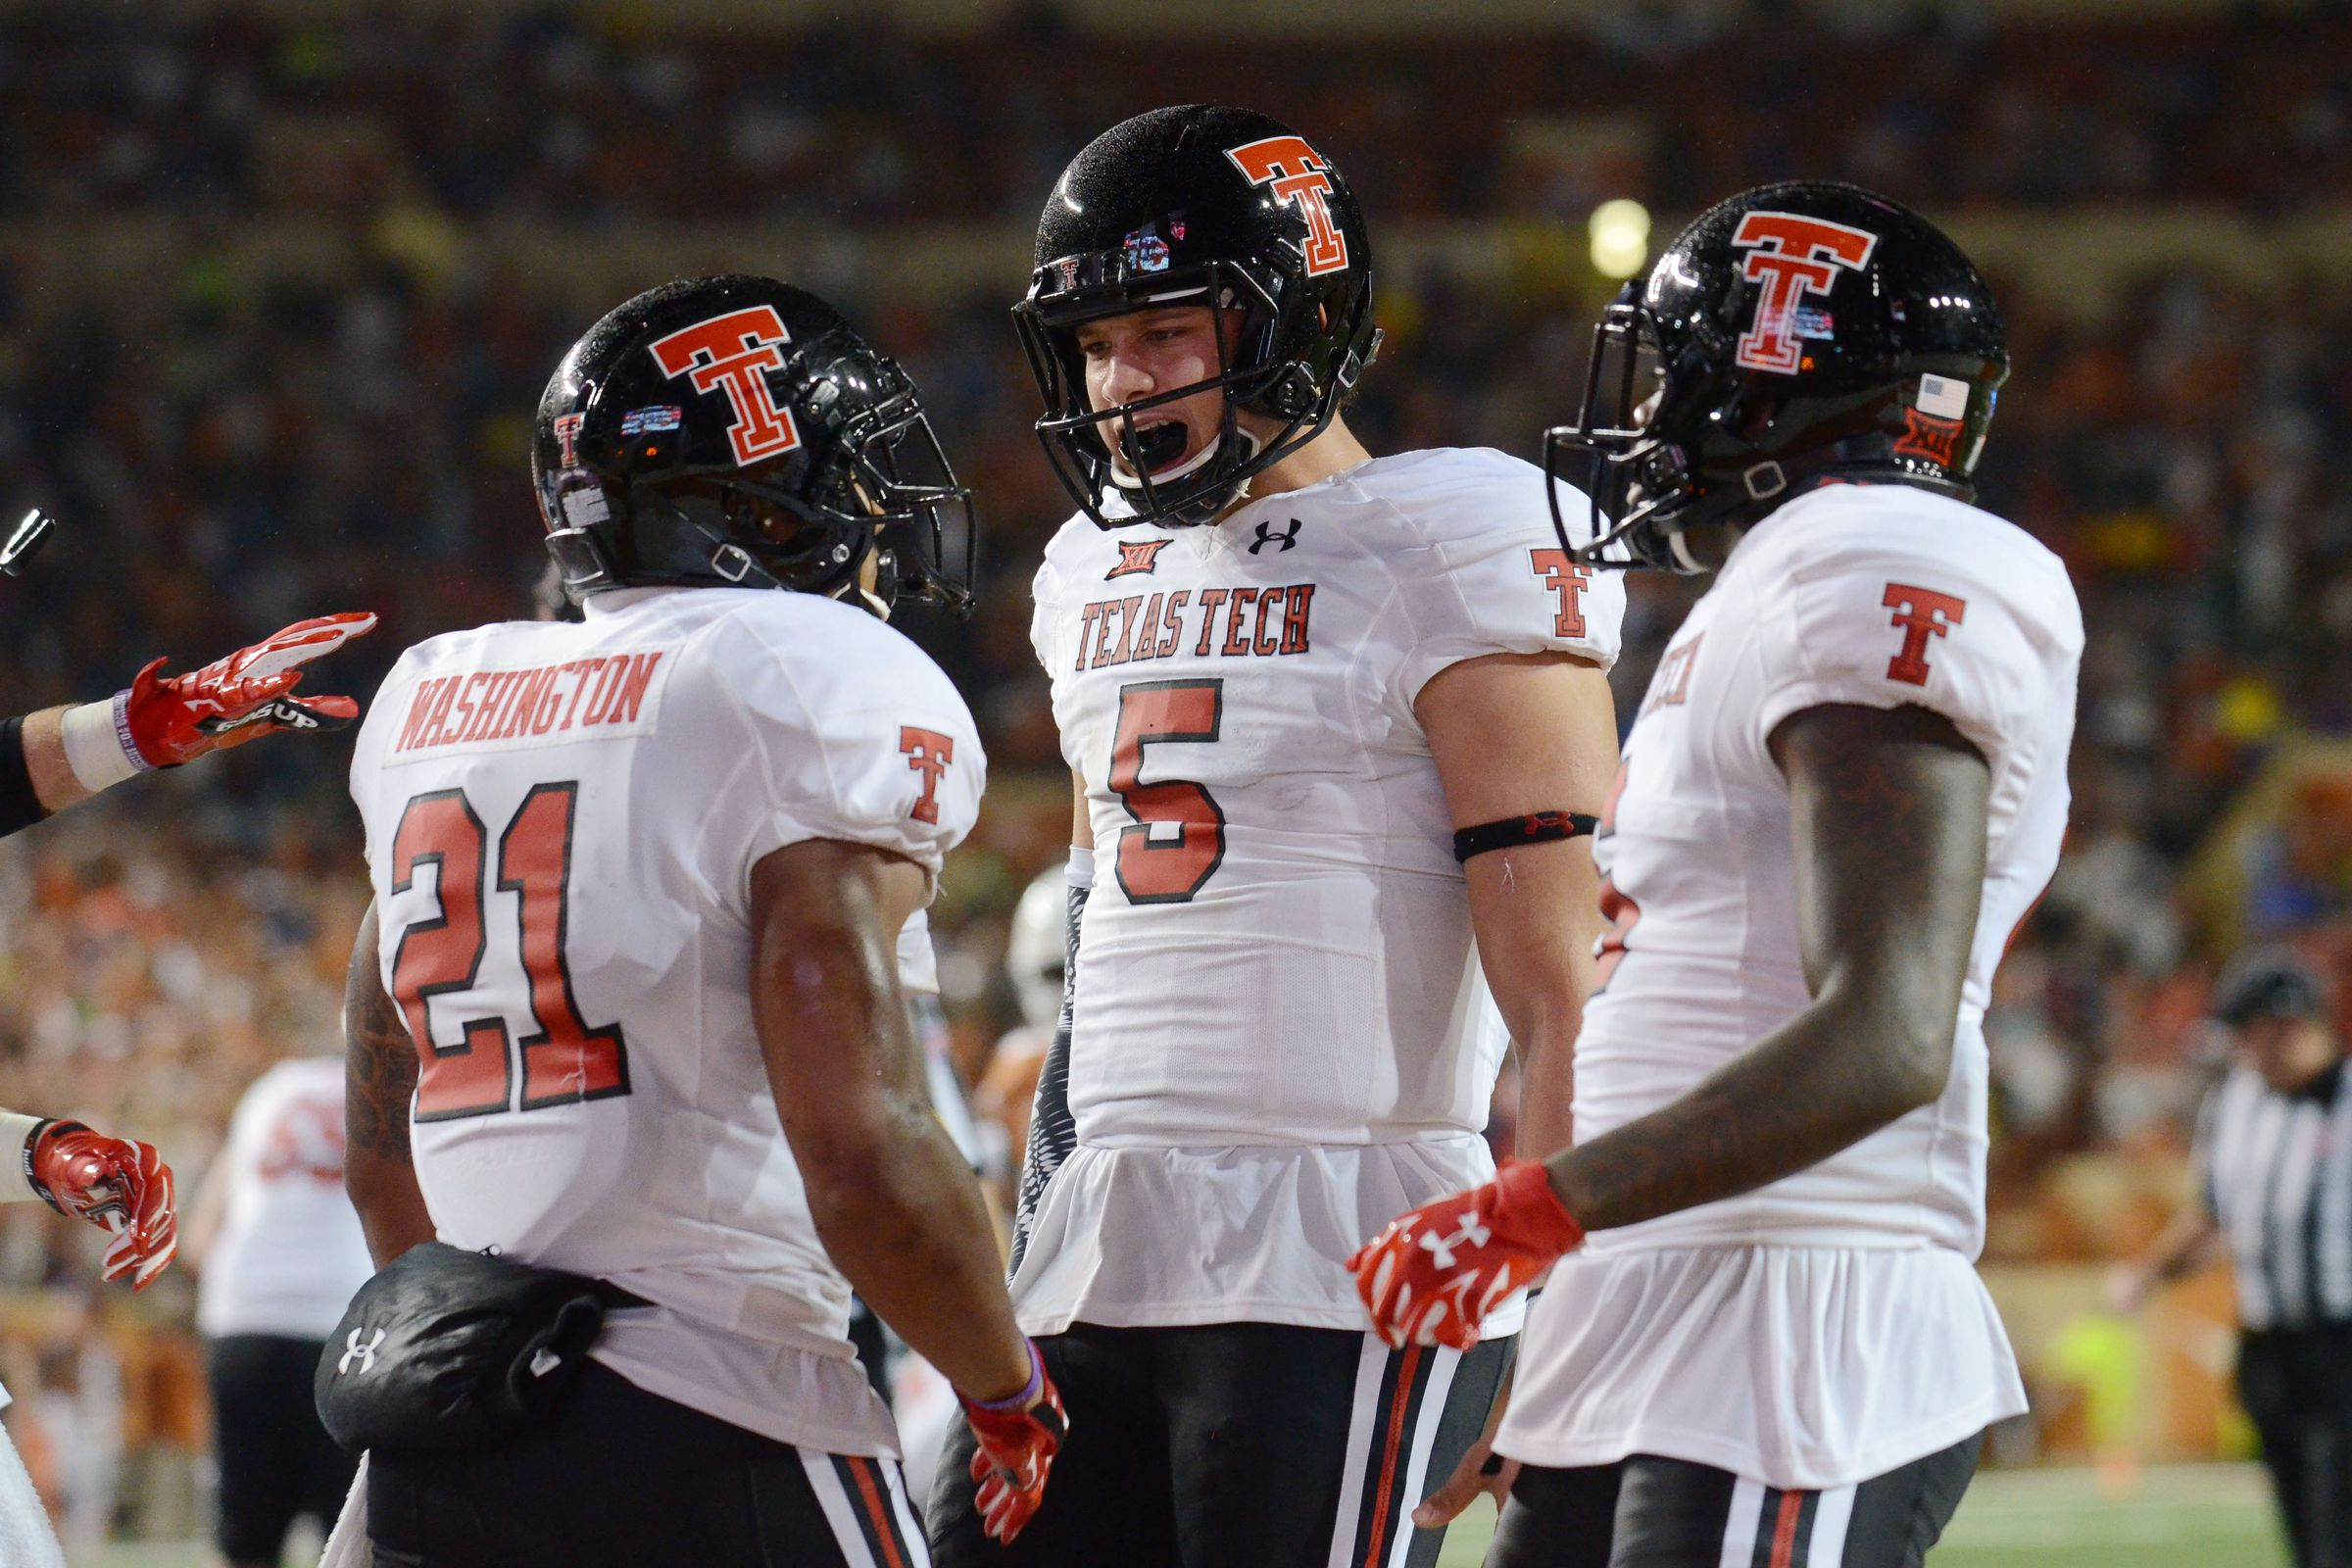 texas tech bowl projections 2018 college football bowl projections jul 26 dalton disclaimer: these do not   new mexico bowl | dec 15, 2018 utah state vs  texas tech vs utah.